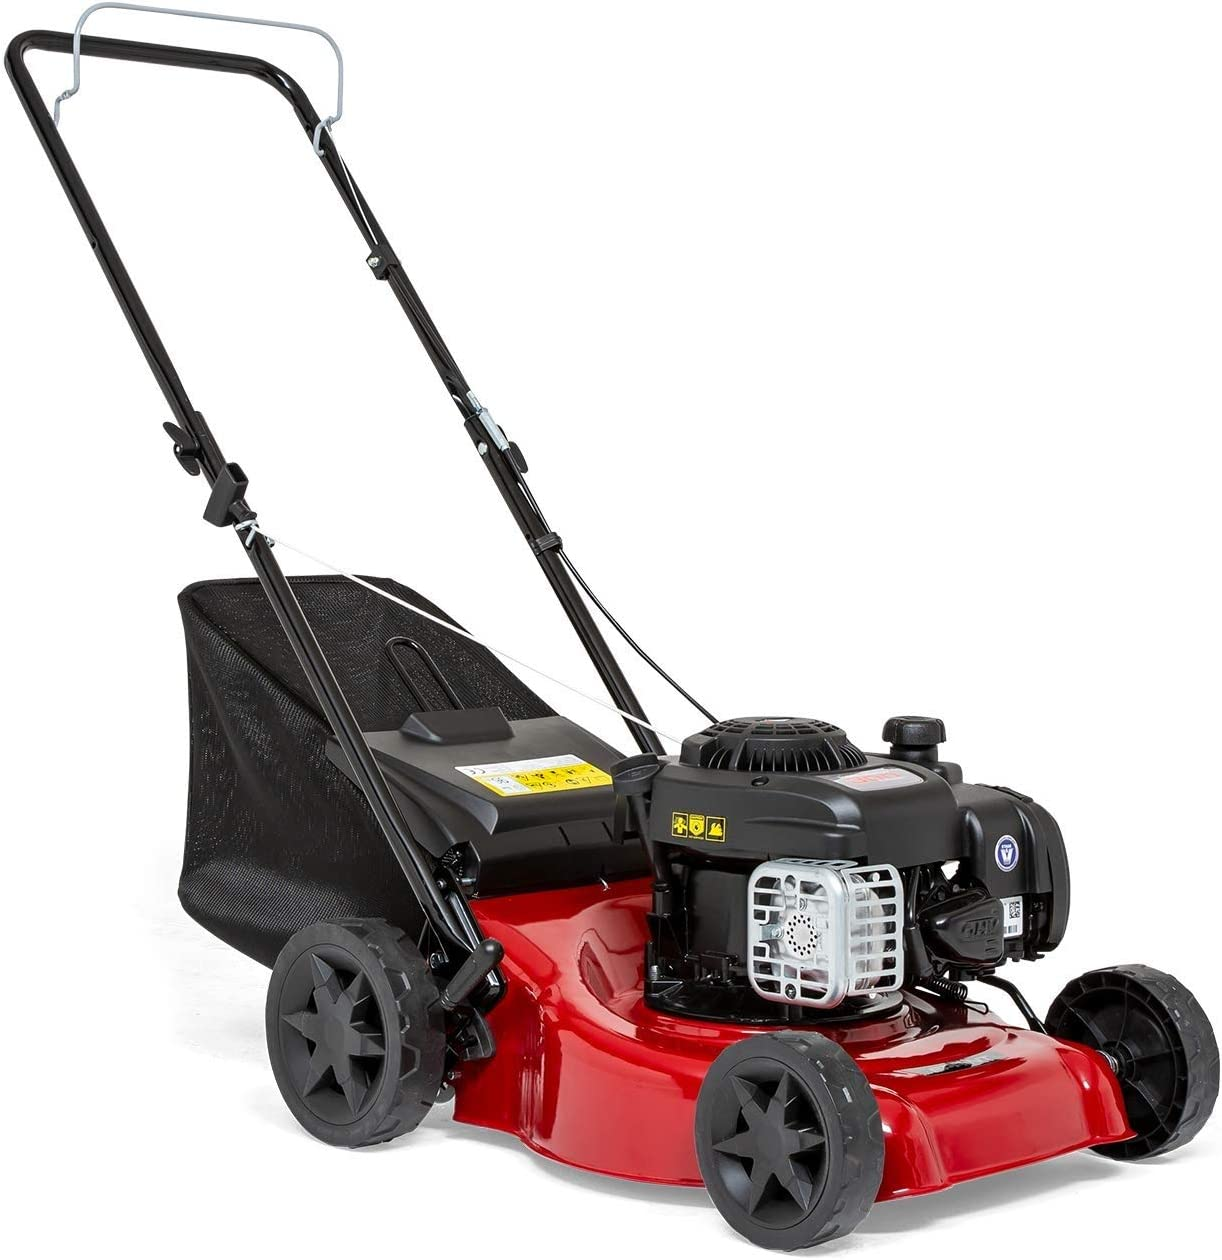 Sprint 2691620 410P Push Petrol Lawn Mower 41cm (16